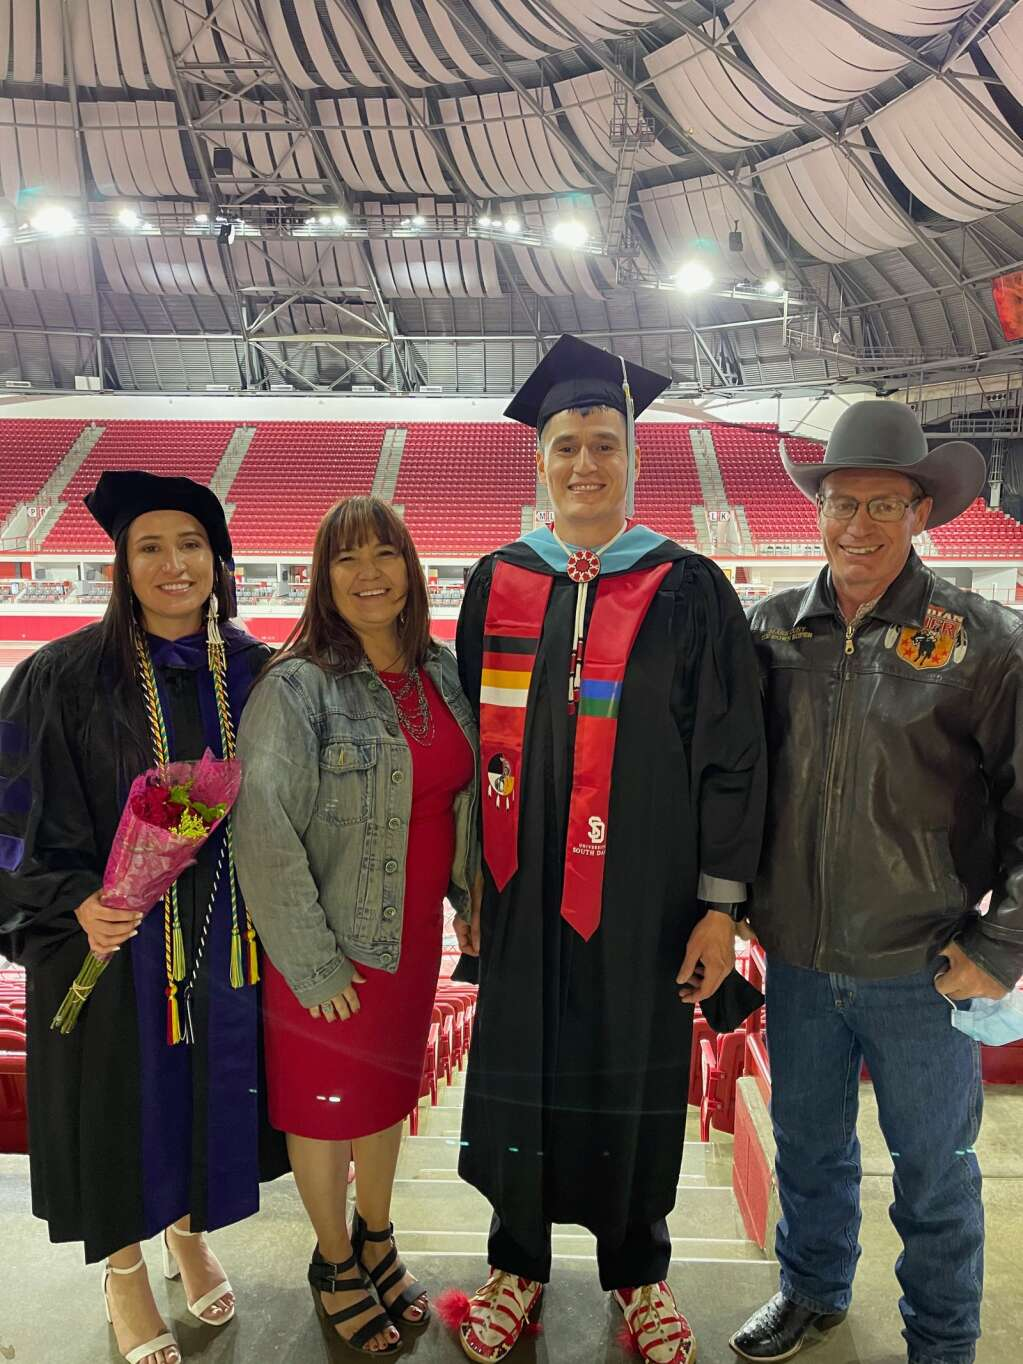 Graduation day for Josey and her fiancé Jacey Mesteth, with Josey's mom Leslie and step-dad Mark Cuny. Photo courtesy Josey Johnson